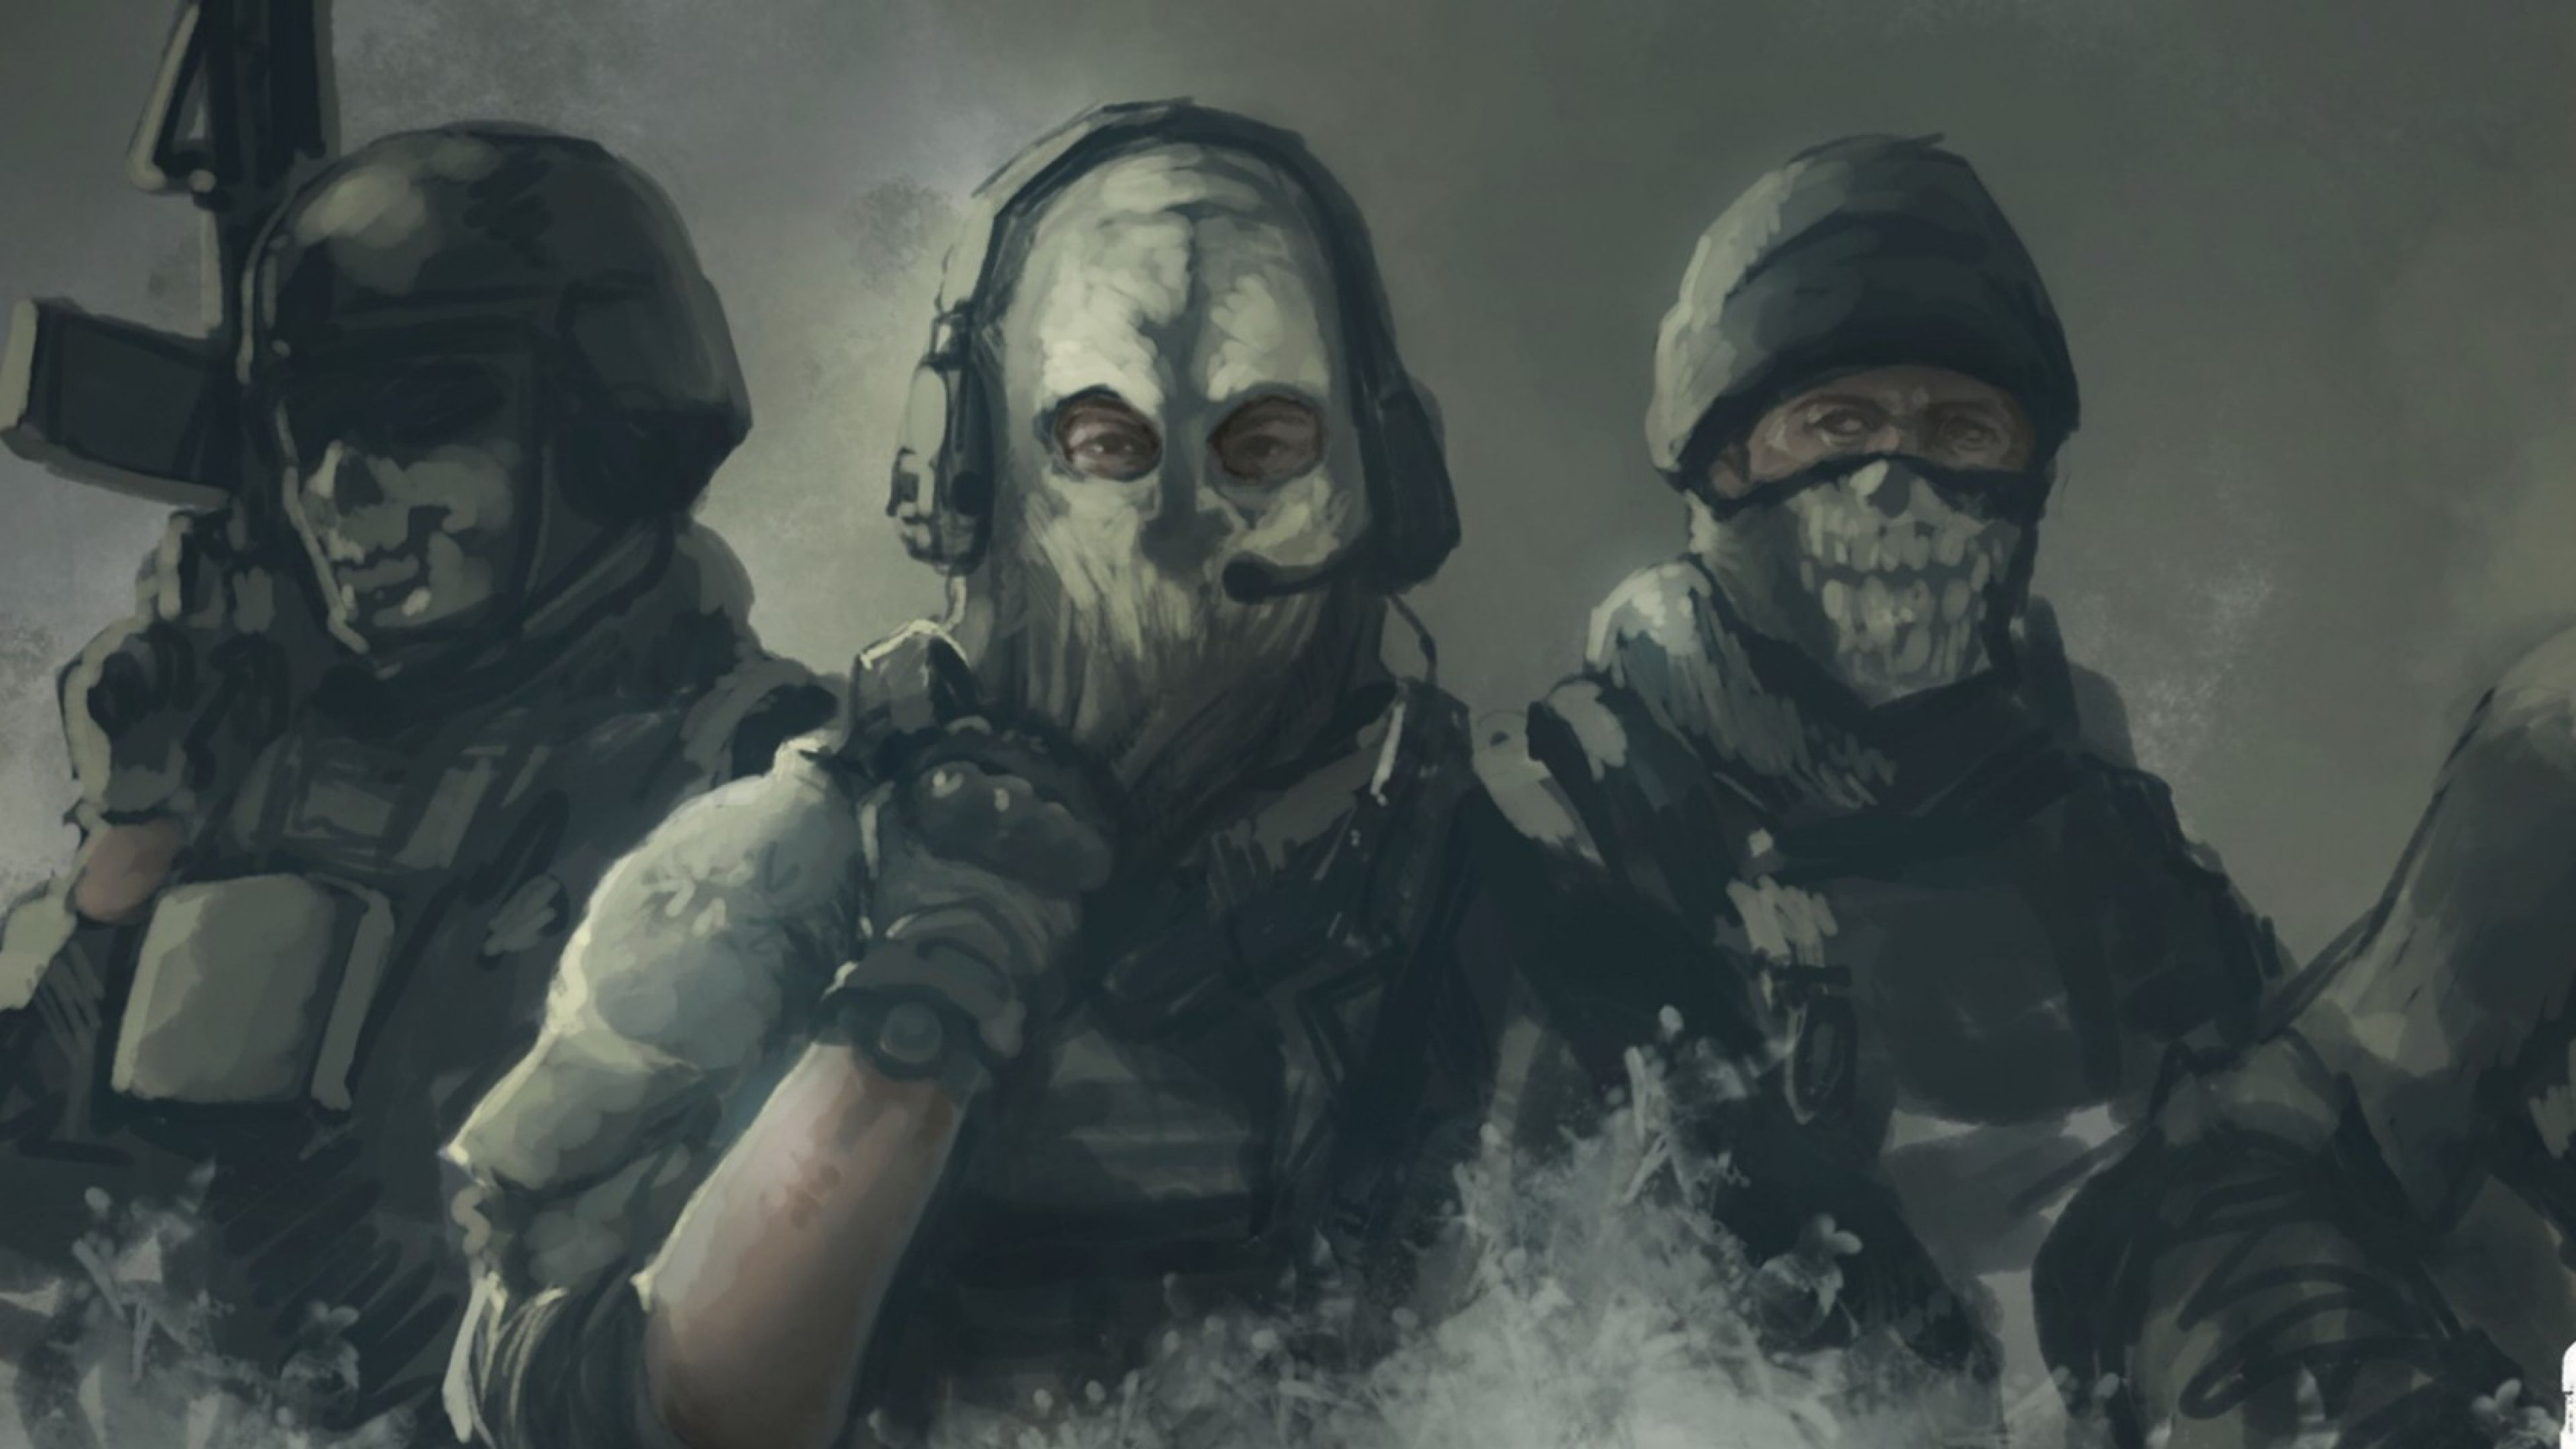 Download Wallpaper 3840x2160 Call Of Duty Ghosts Art 4k Ultra Hd